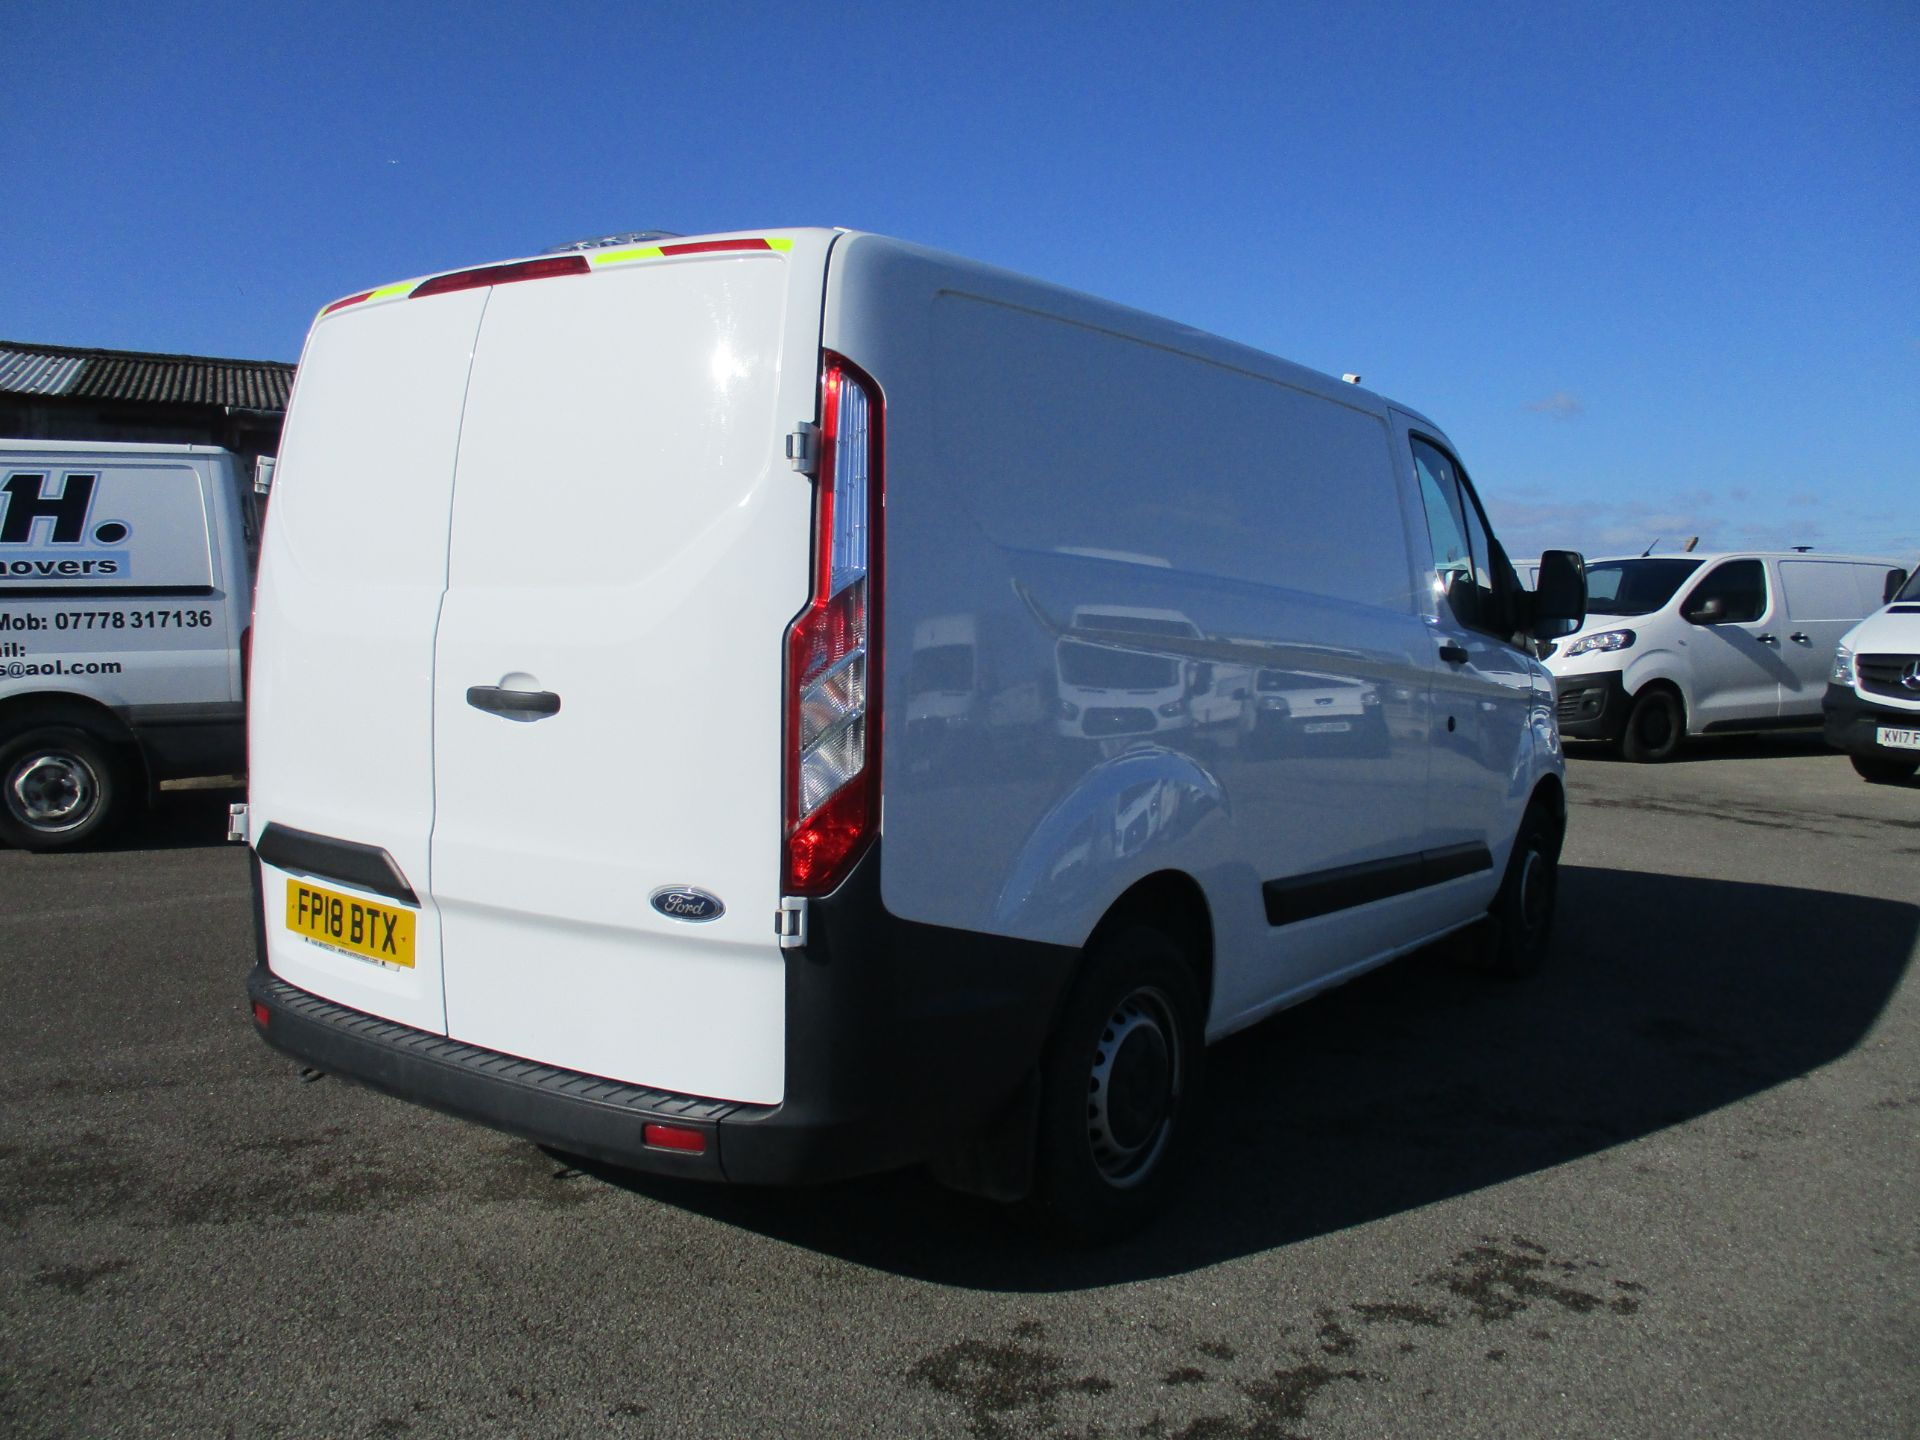 2018 Ford Transit Custom 300 L1 DIESEL FWD 2.0 TDCI 105PS LOW ROOF VAN EURO 6 (FP18BTX) Thumbnail 5